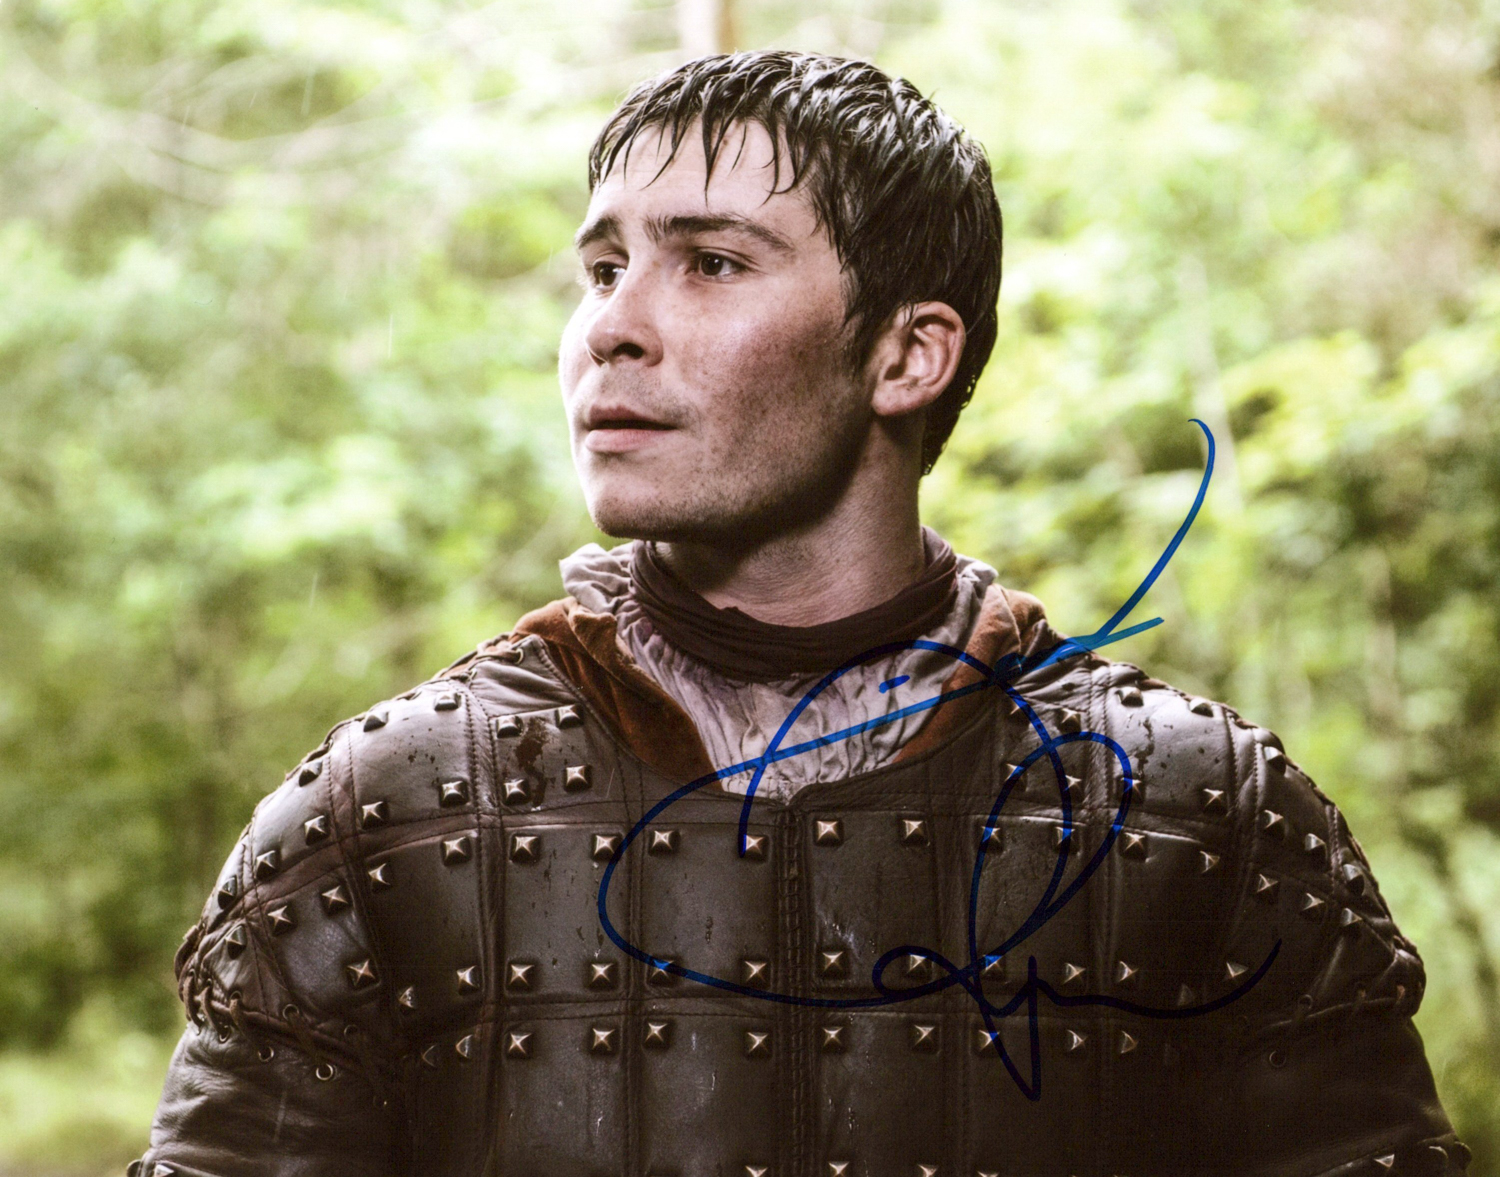 Daniel Portman Original Autogramm auf Foto 20x25cm - Game of Thrones